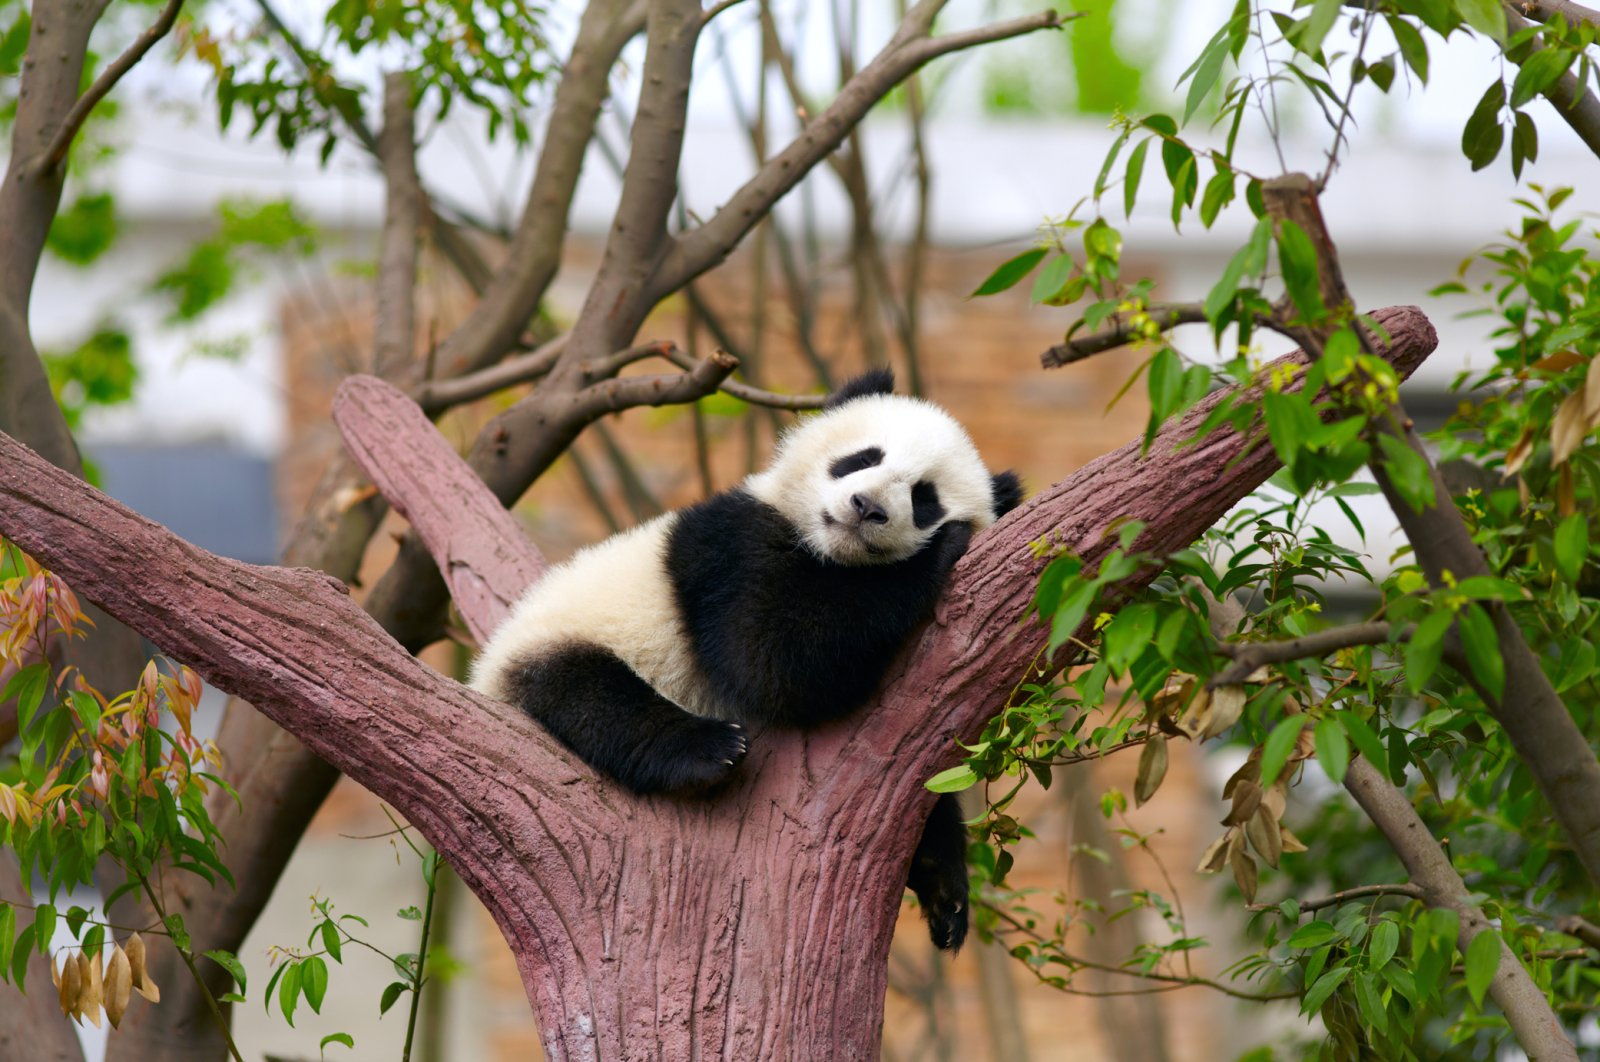 Along with local sea turtles, pandas are the most adopted species in Turkey as part of a wildlife adoption program. (iStock Photo)